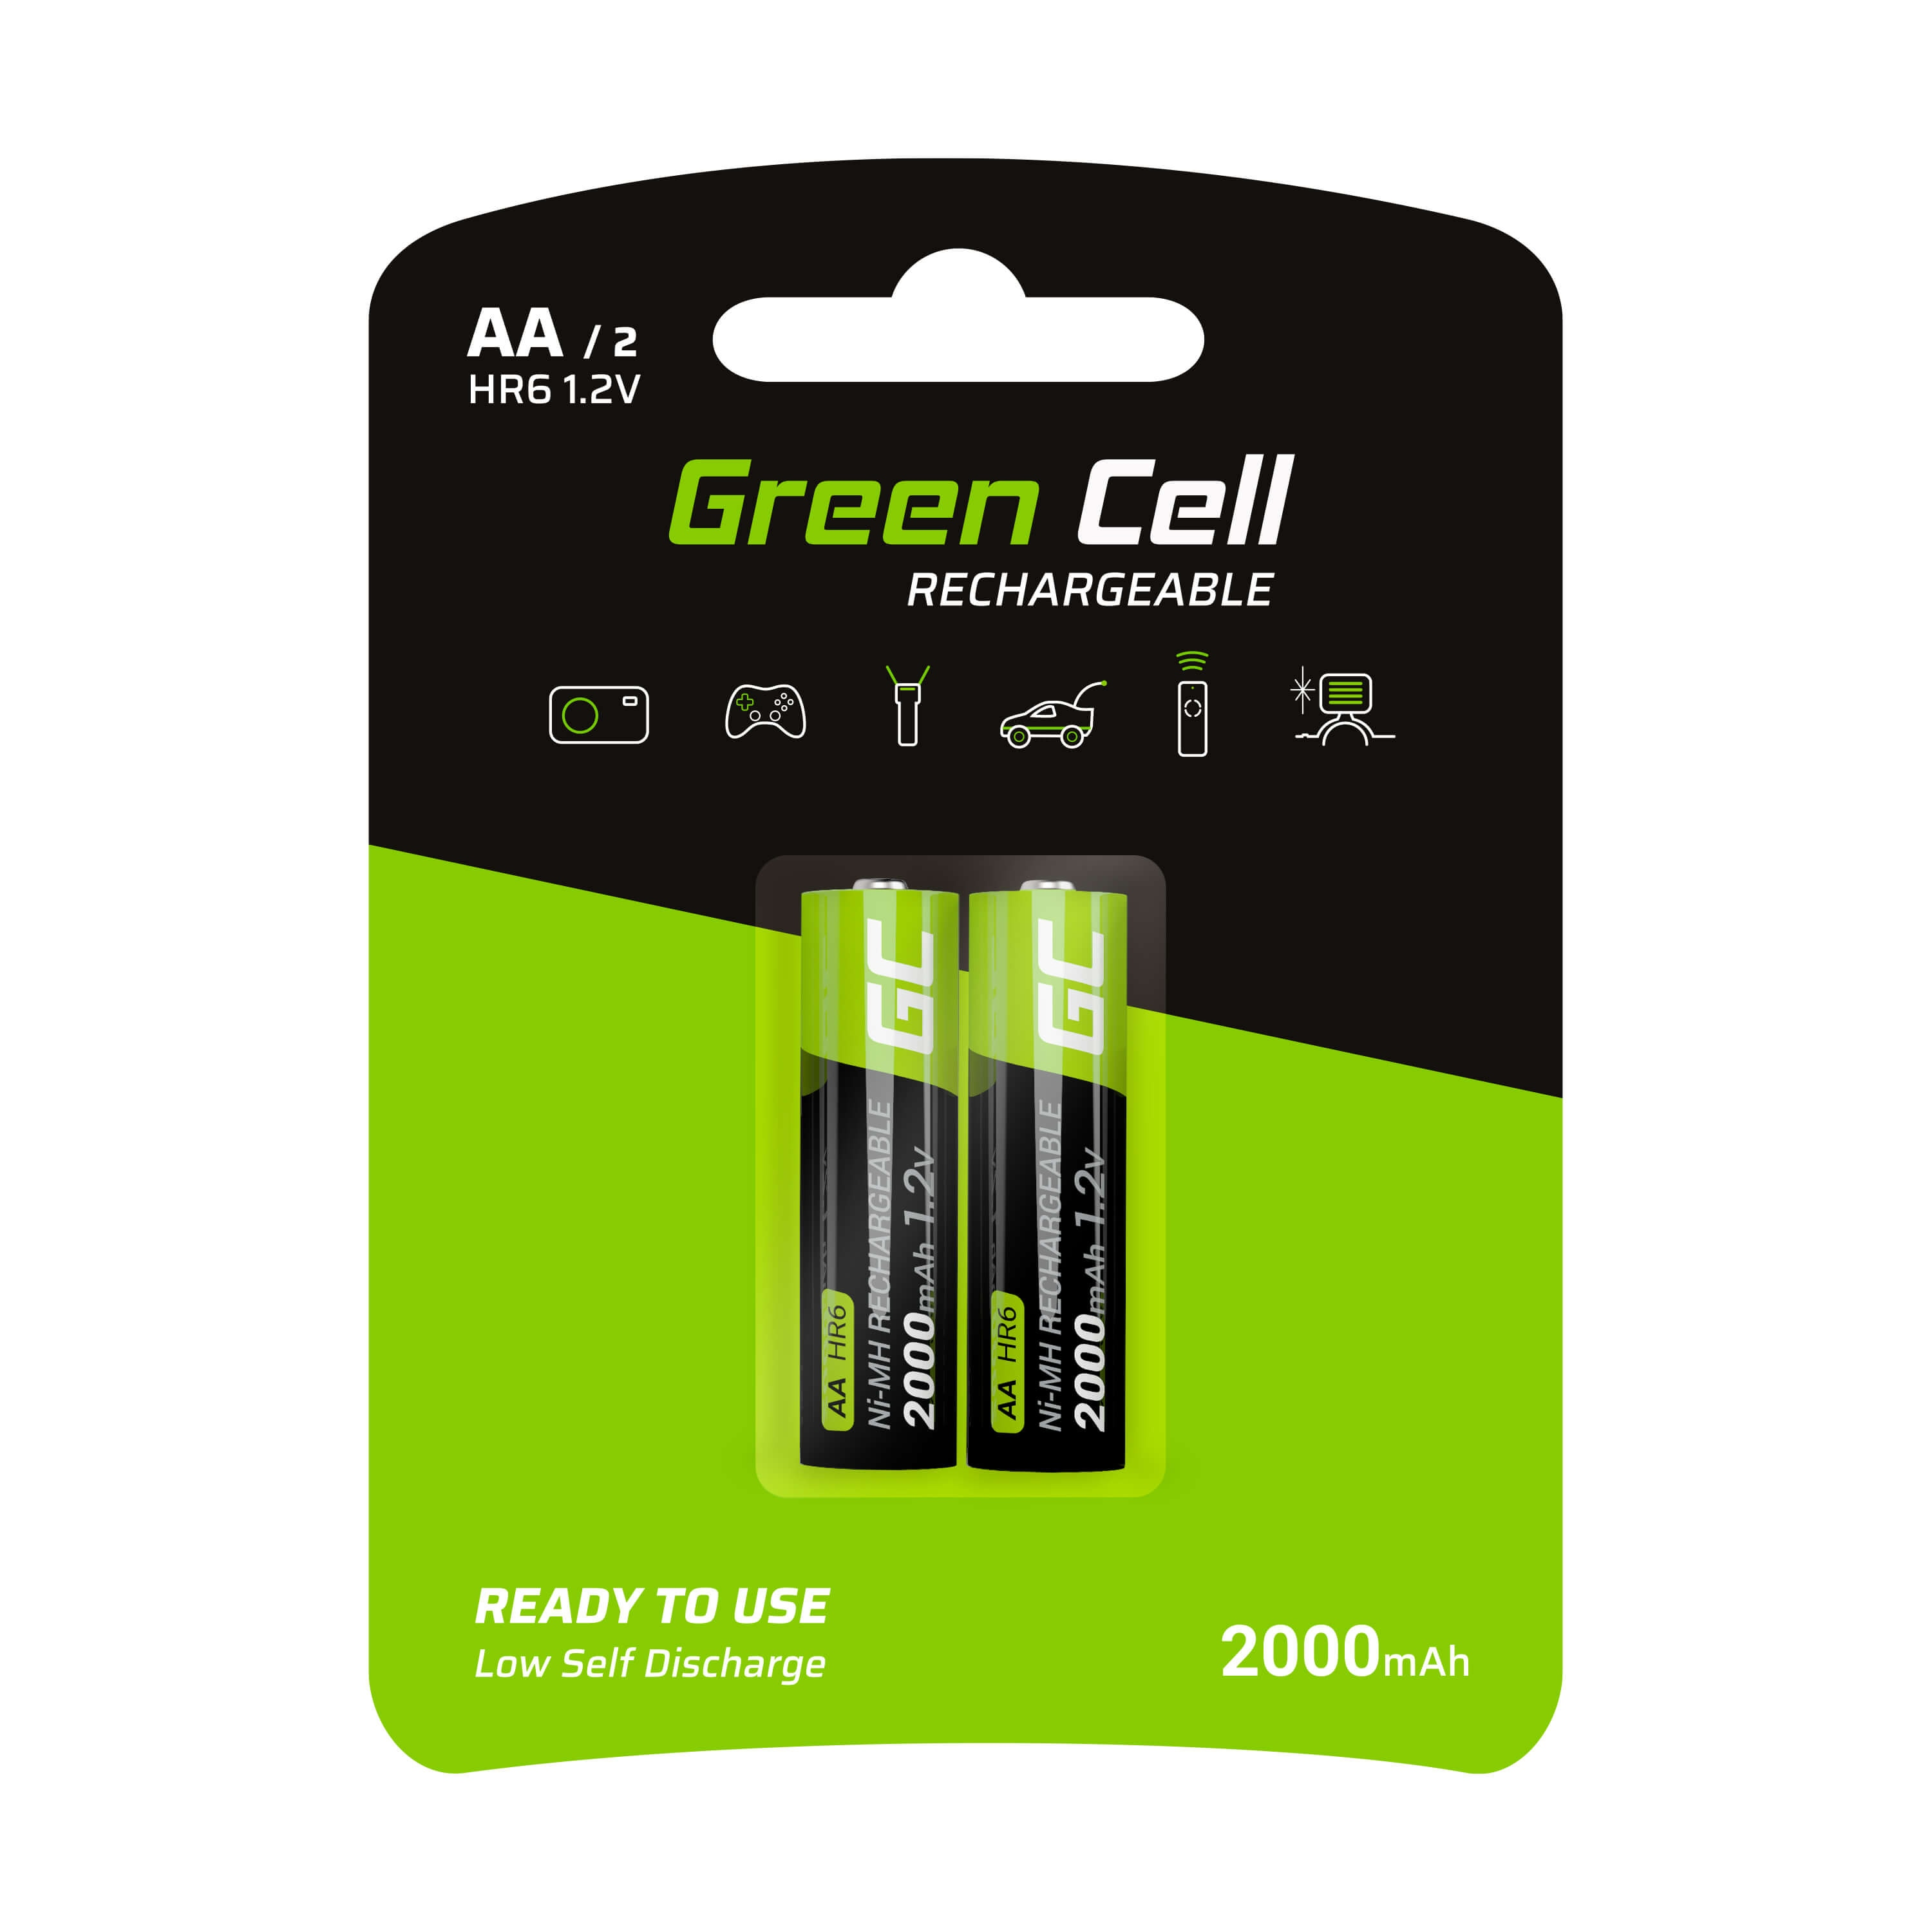 GC® 2x AA rechargeable batteries 2000mAh HR6 Green Cell - 1